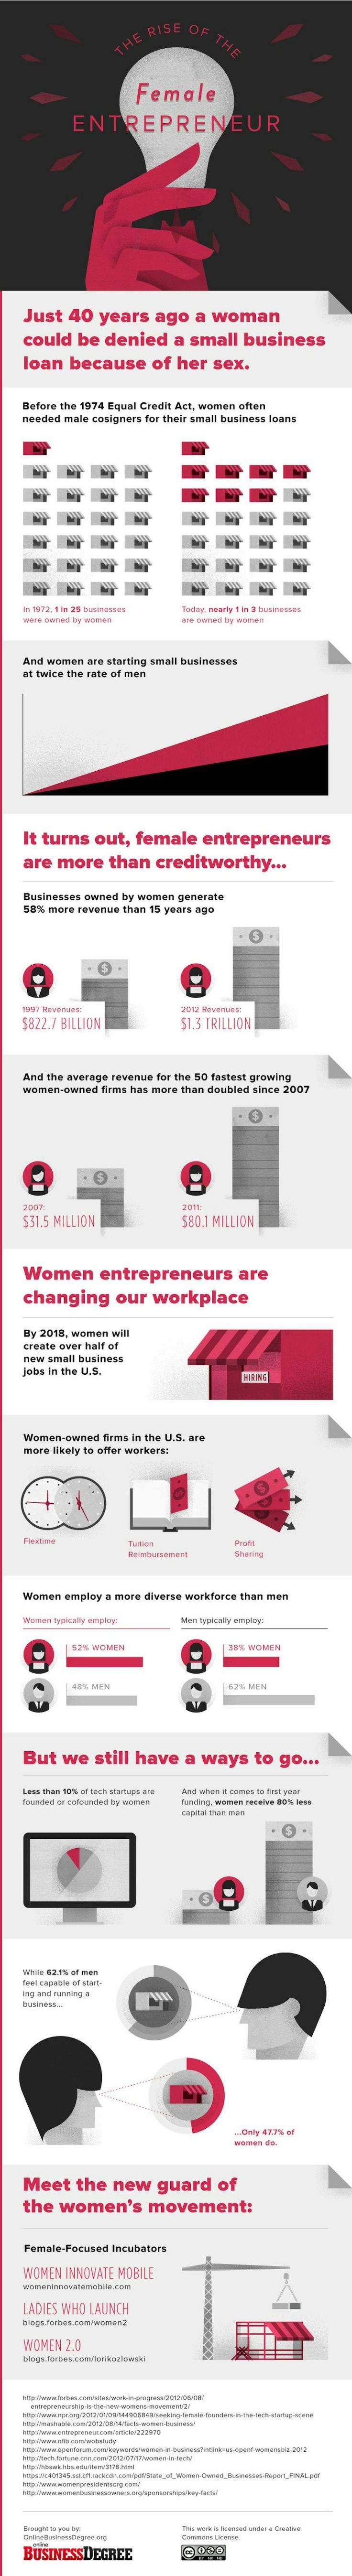 Rise of the Female Entrepreneur Infographic